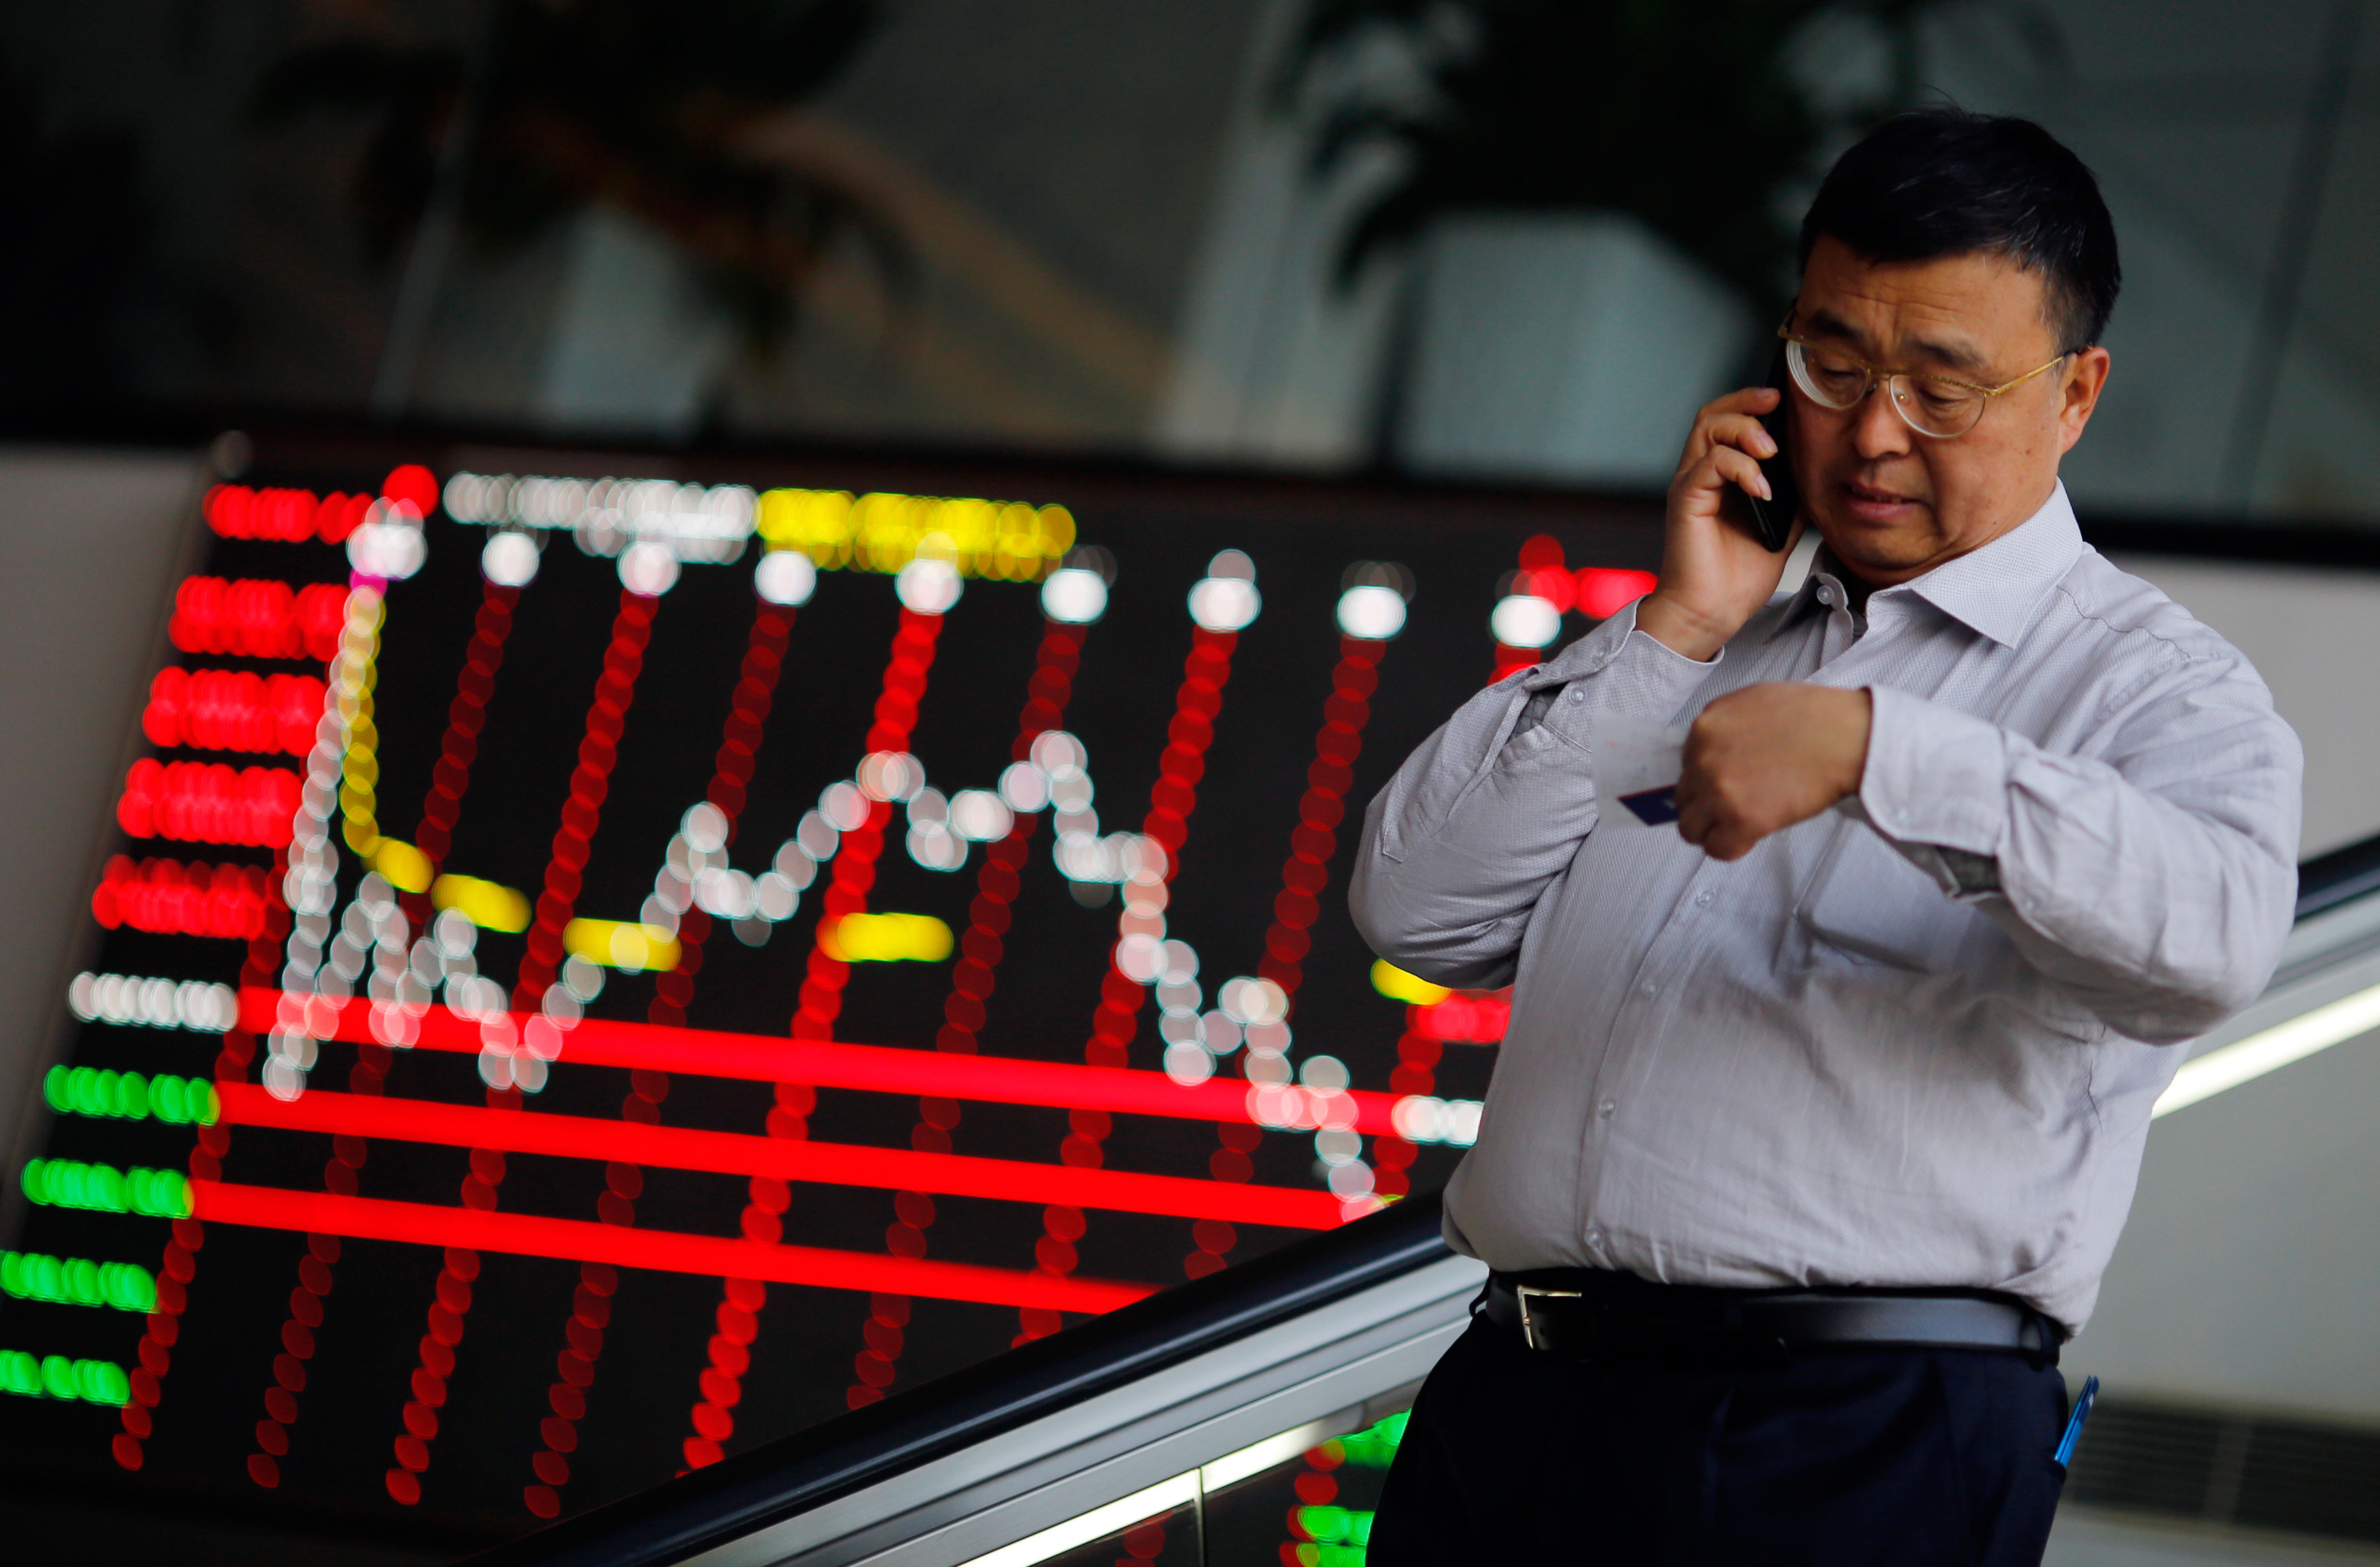 Chinese stock sink on shattered investor confidence; pulls down Indian bourses too